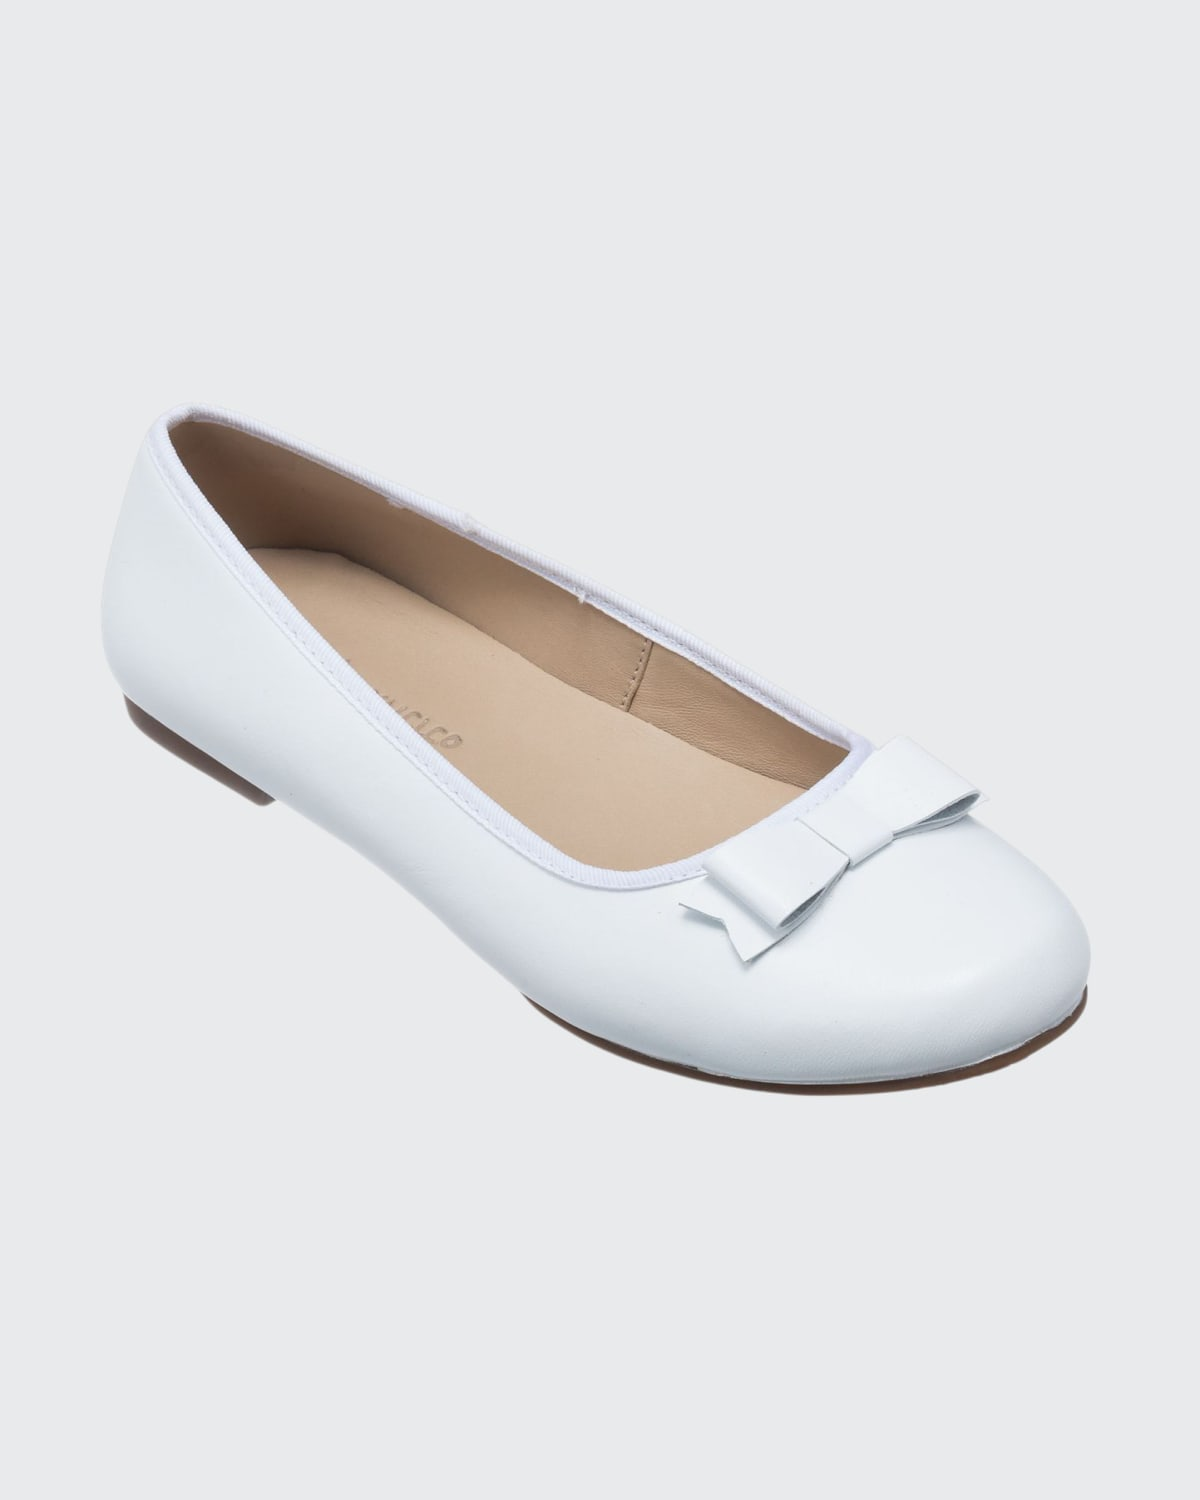 Camille Metallic Leather Flats